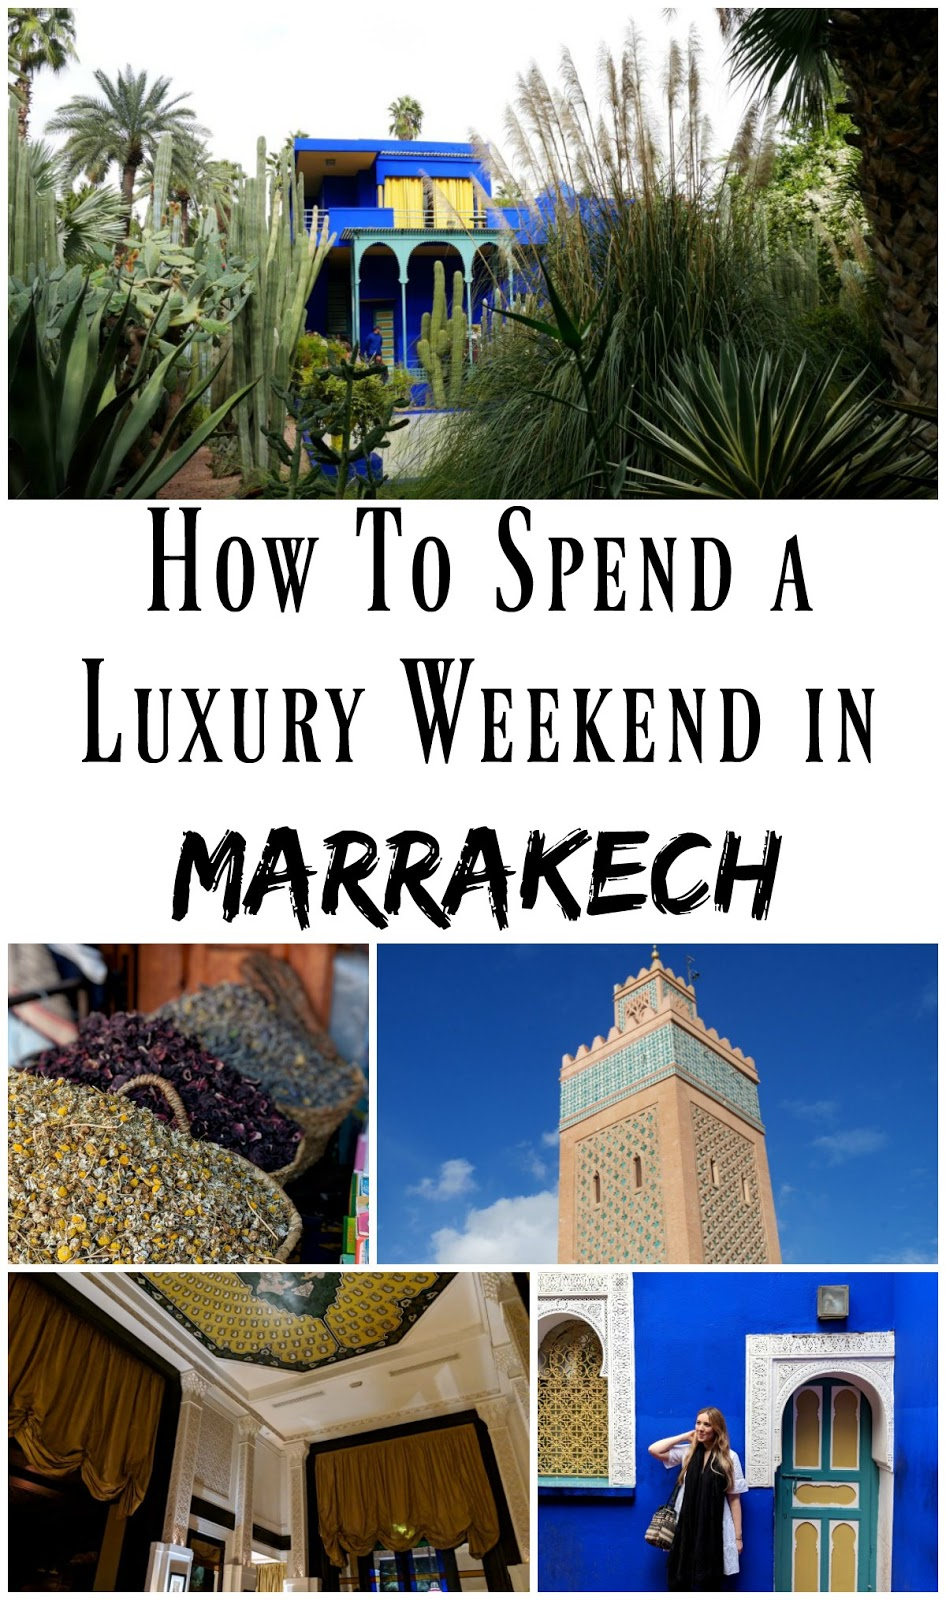 Luxury in 48 Hours: Marrakech, Morocco. Marrakech is the perfect African city break for those who live in Europe. It's a short flight from most European cities but offers a wealth of culture and things to do. The souks make for a very fun shopping experience, and the Jardin Majorelle is unmissable!